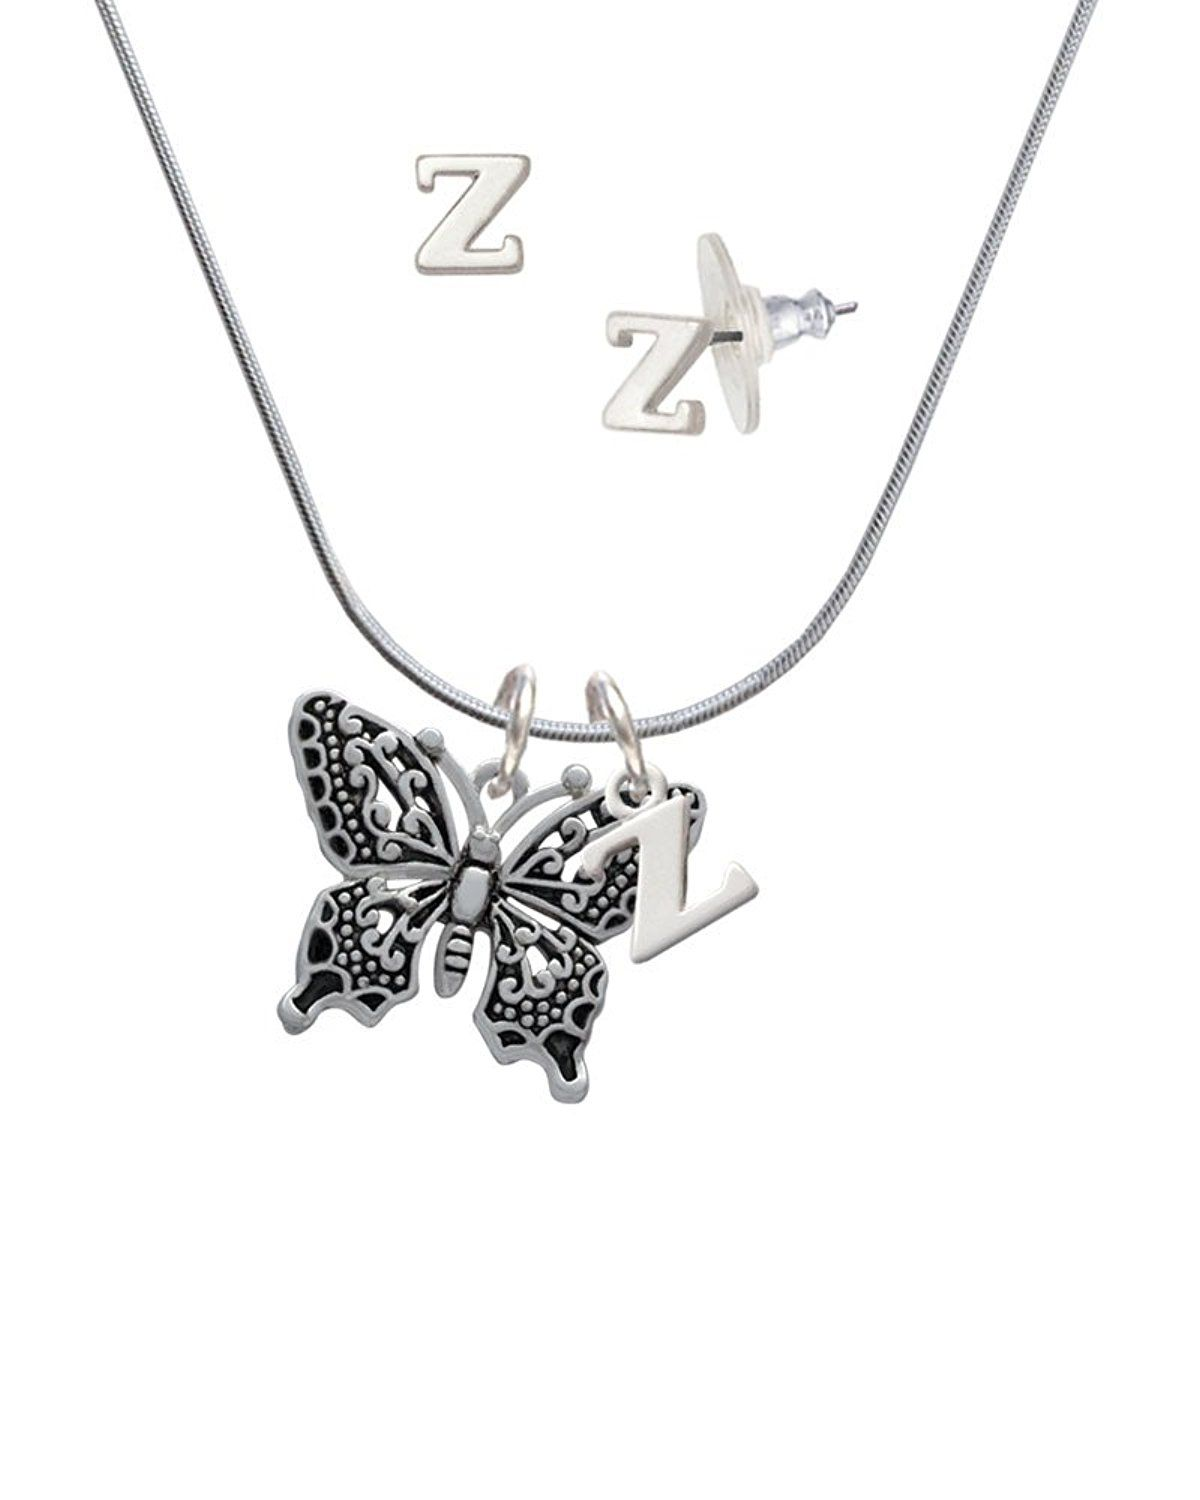 1d5065844ee8 Silvertone Large Fancy Butterfly - Z Initial Charm Necklace and Stud  Earrings Jewelry Set     For more information